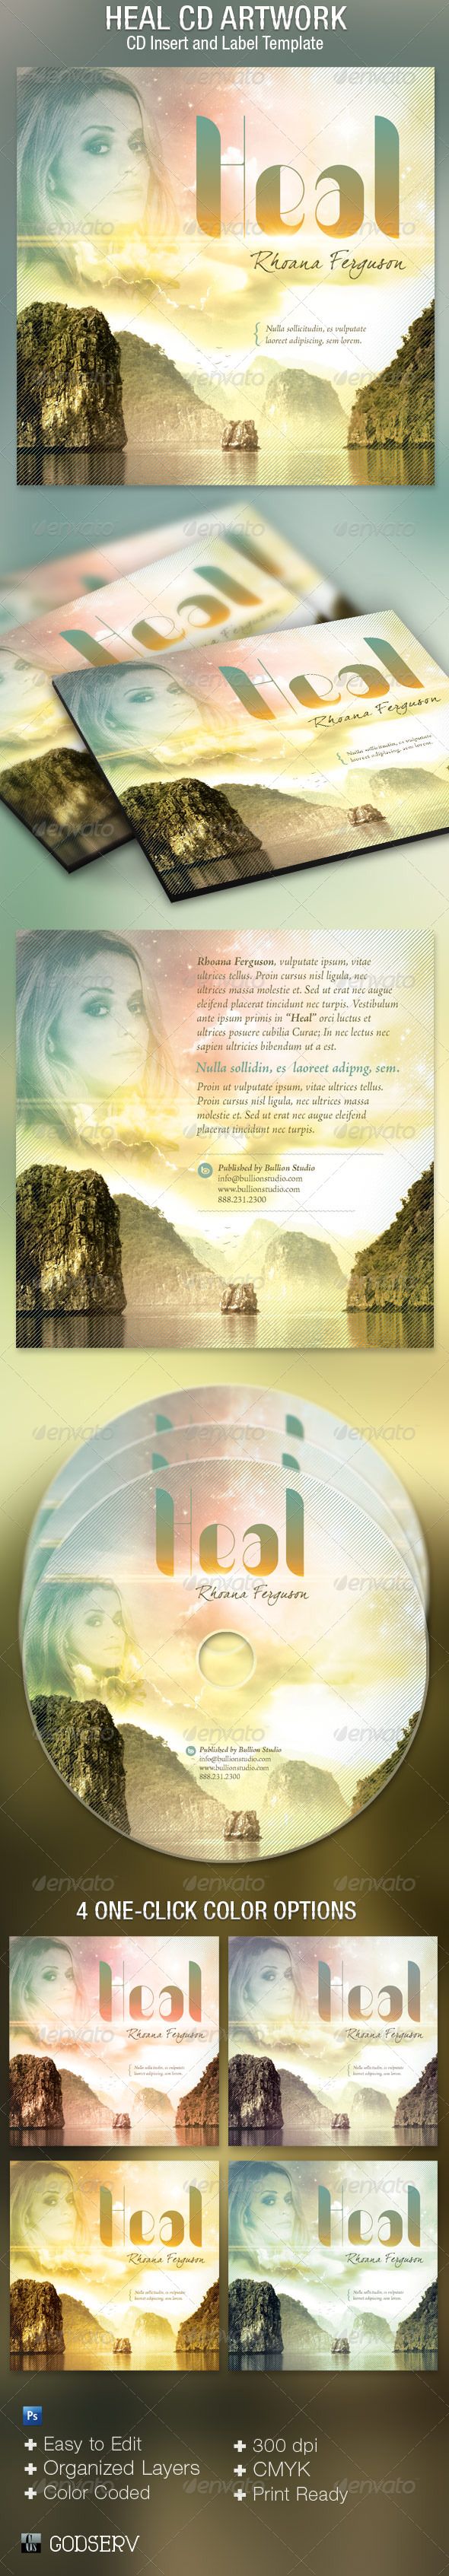 Heal CD Artwork Template - CD & DVD artwork Print Templates